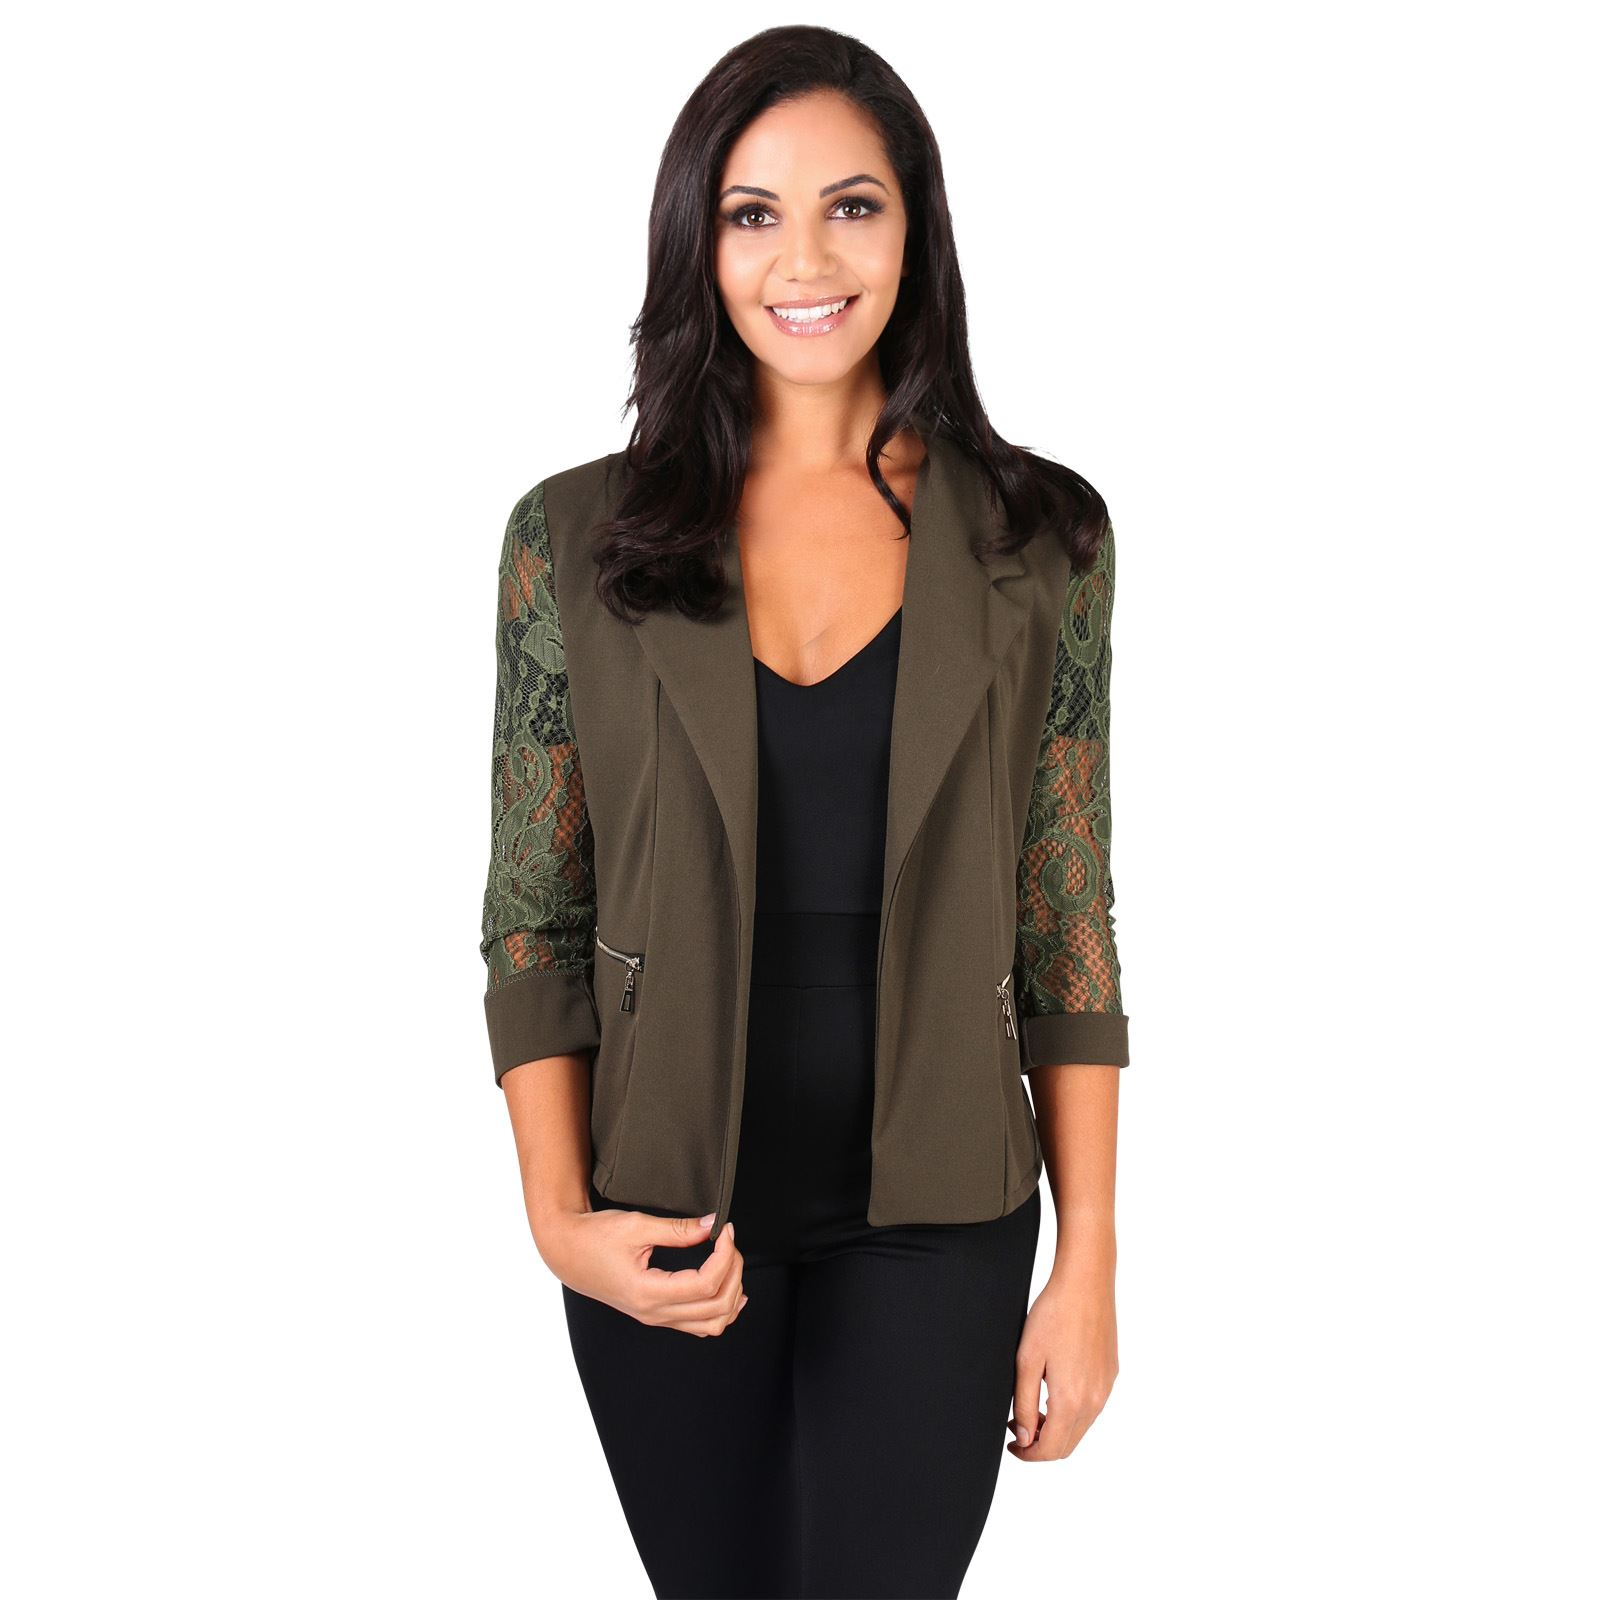 Find great deals on eBay for womens party jackets. Shop with confidence.